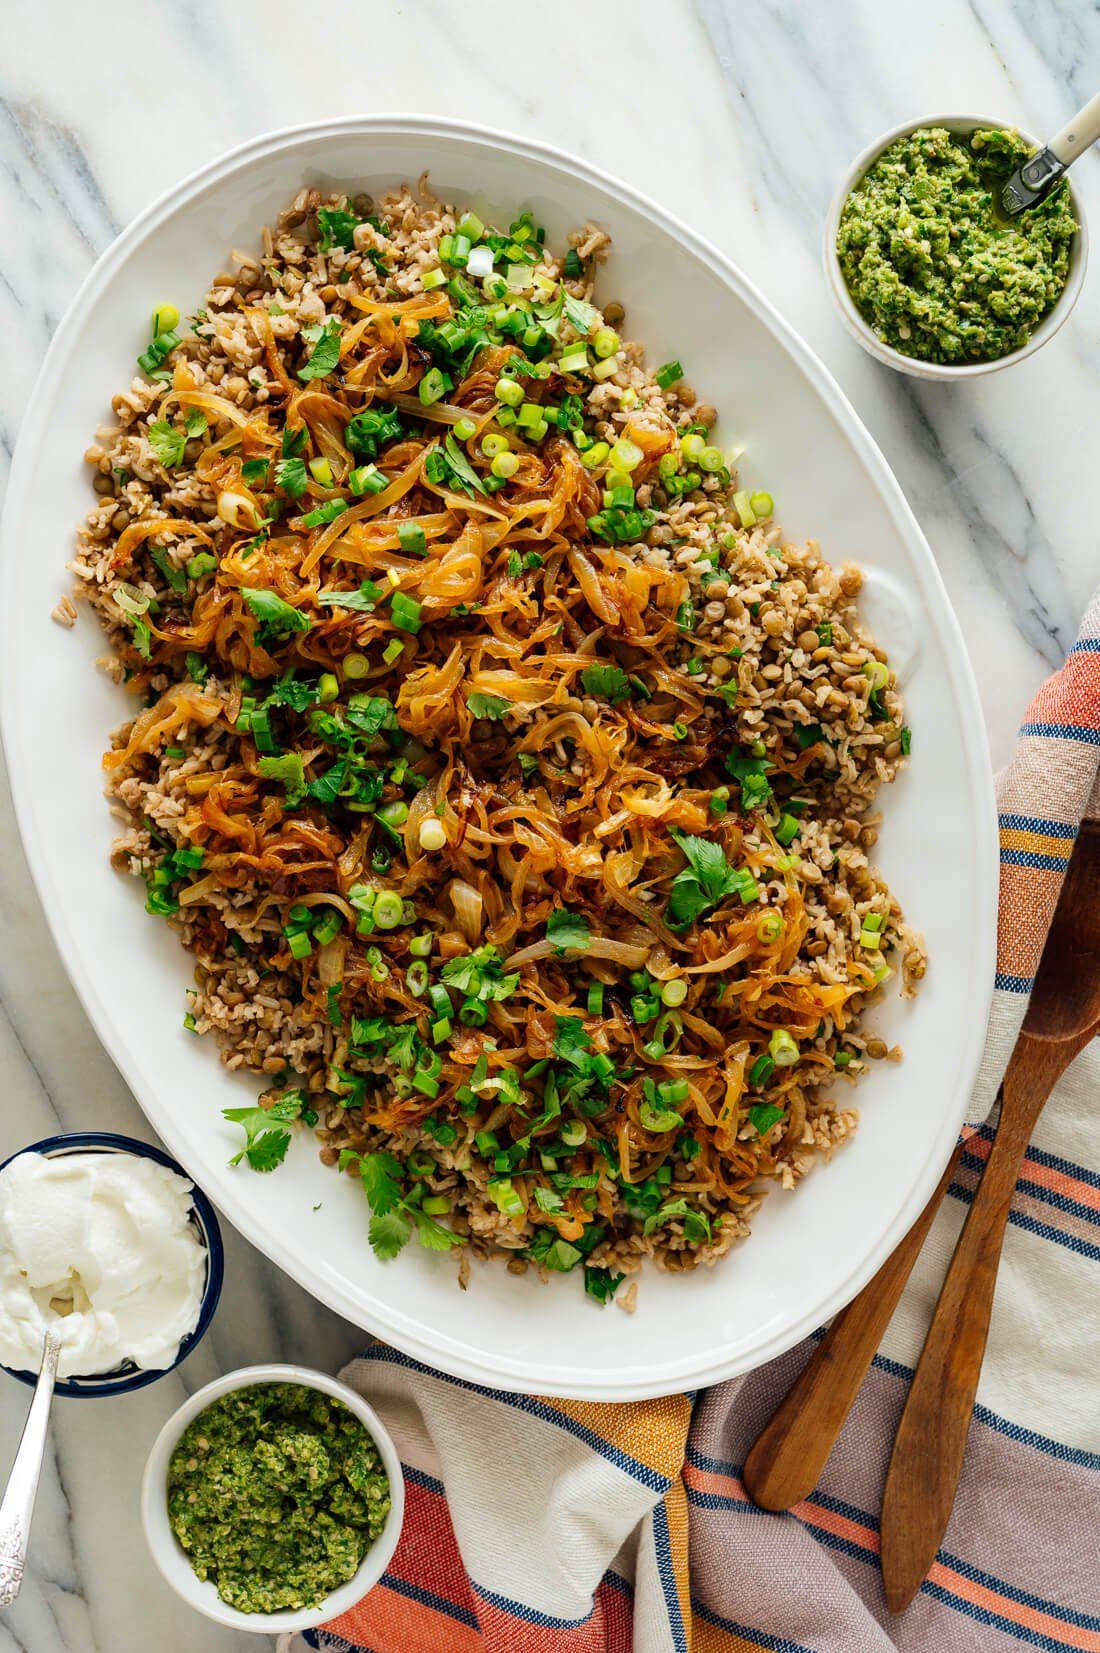 Mujaddara (Lentils and Rice with Caramelized Onions) images